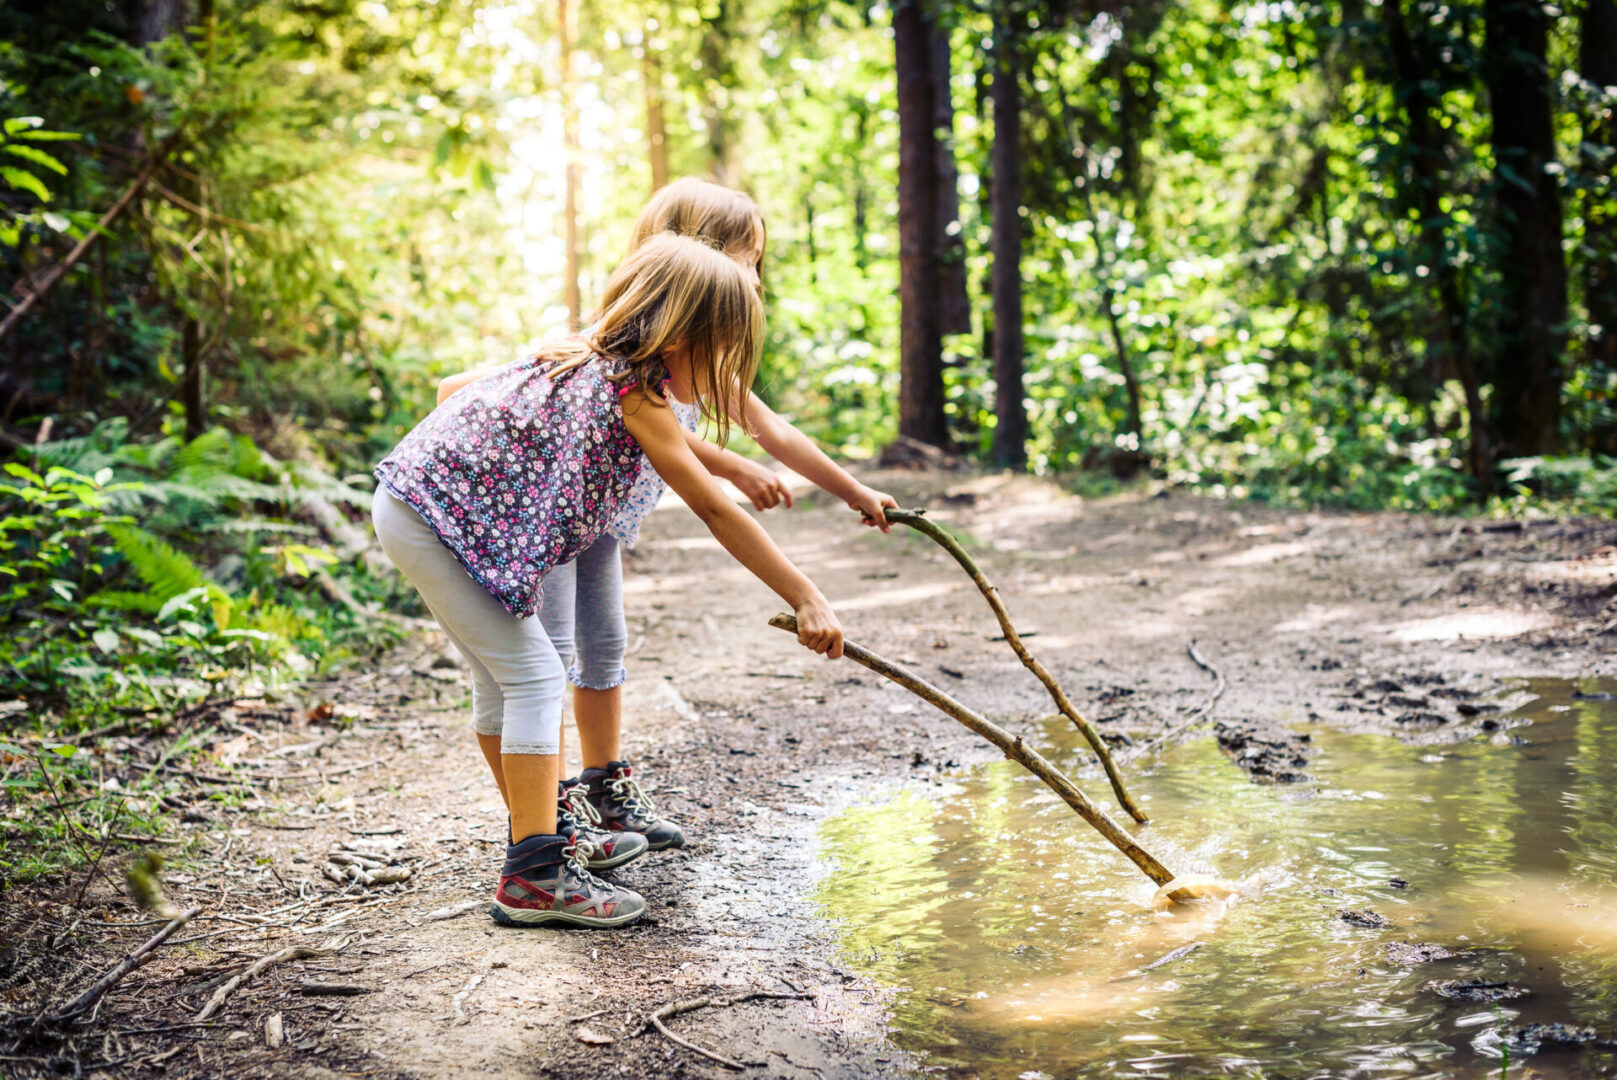 Children hiking in mountains or forest with sport hiking shoes. Girls are playing and learning in the nature with sticks and muddy puddle.